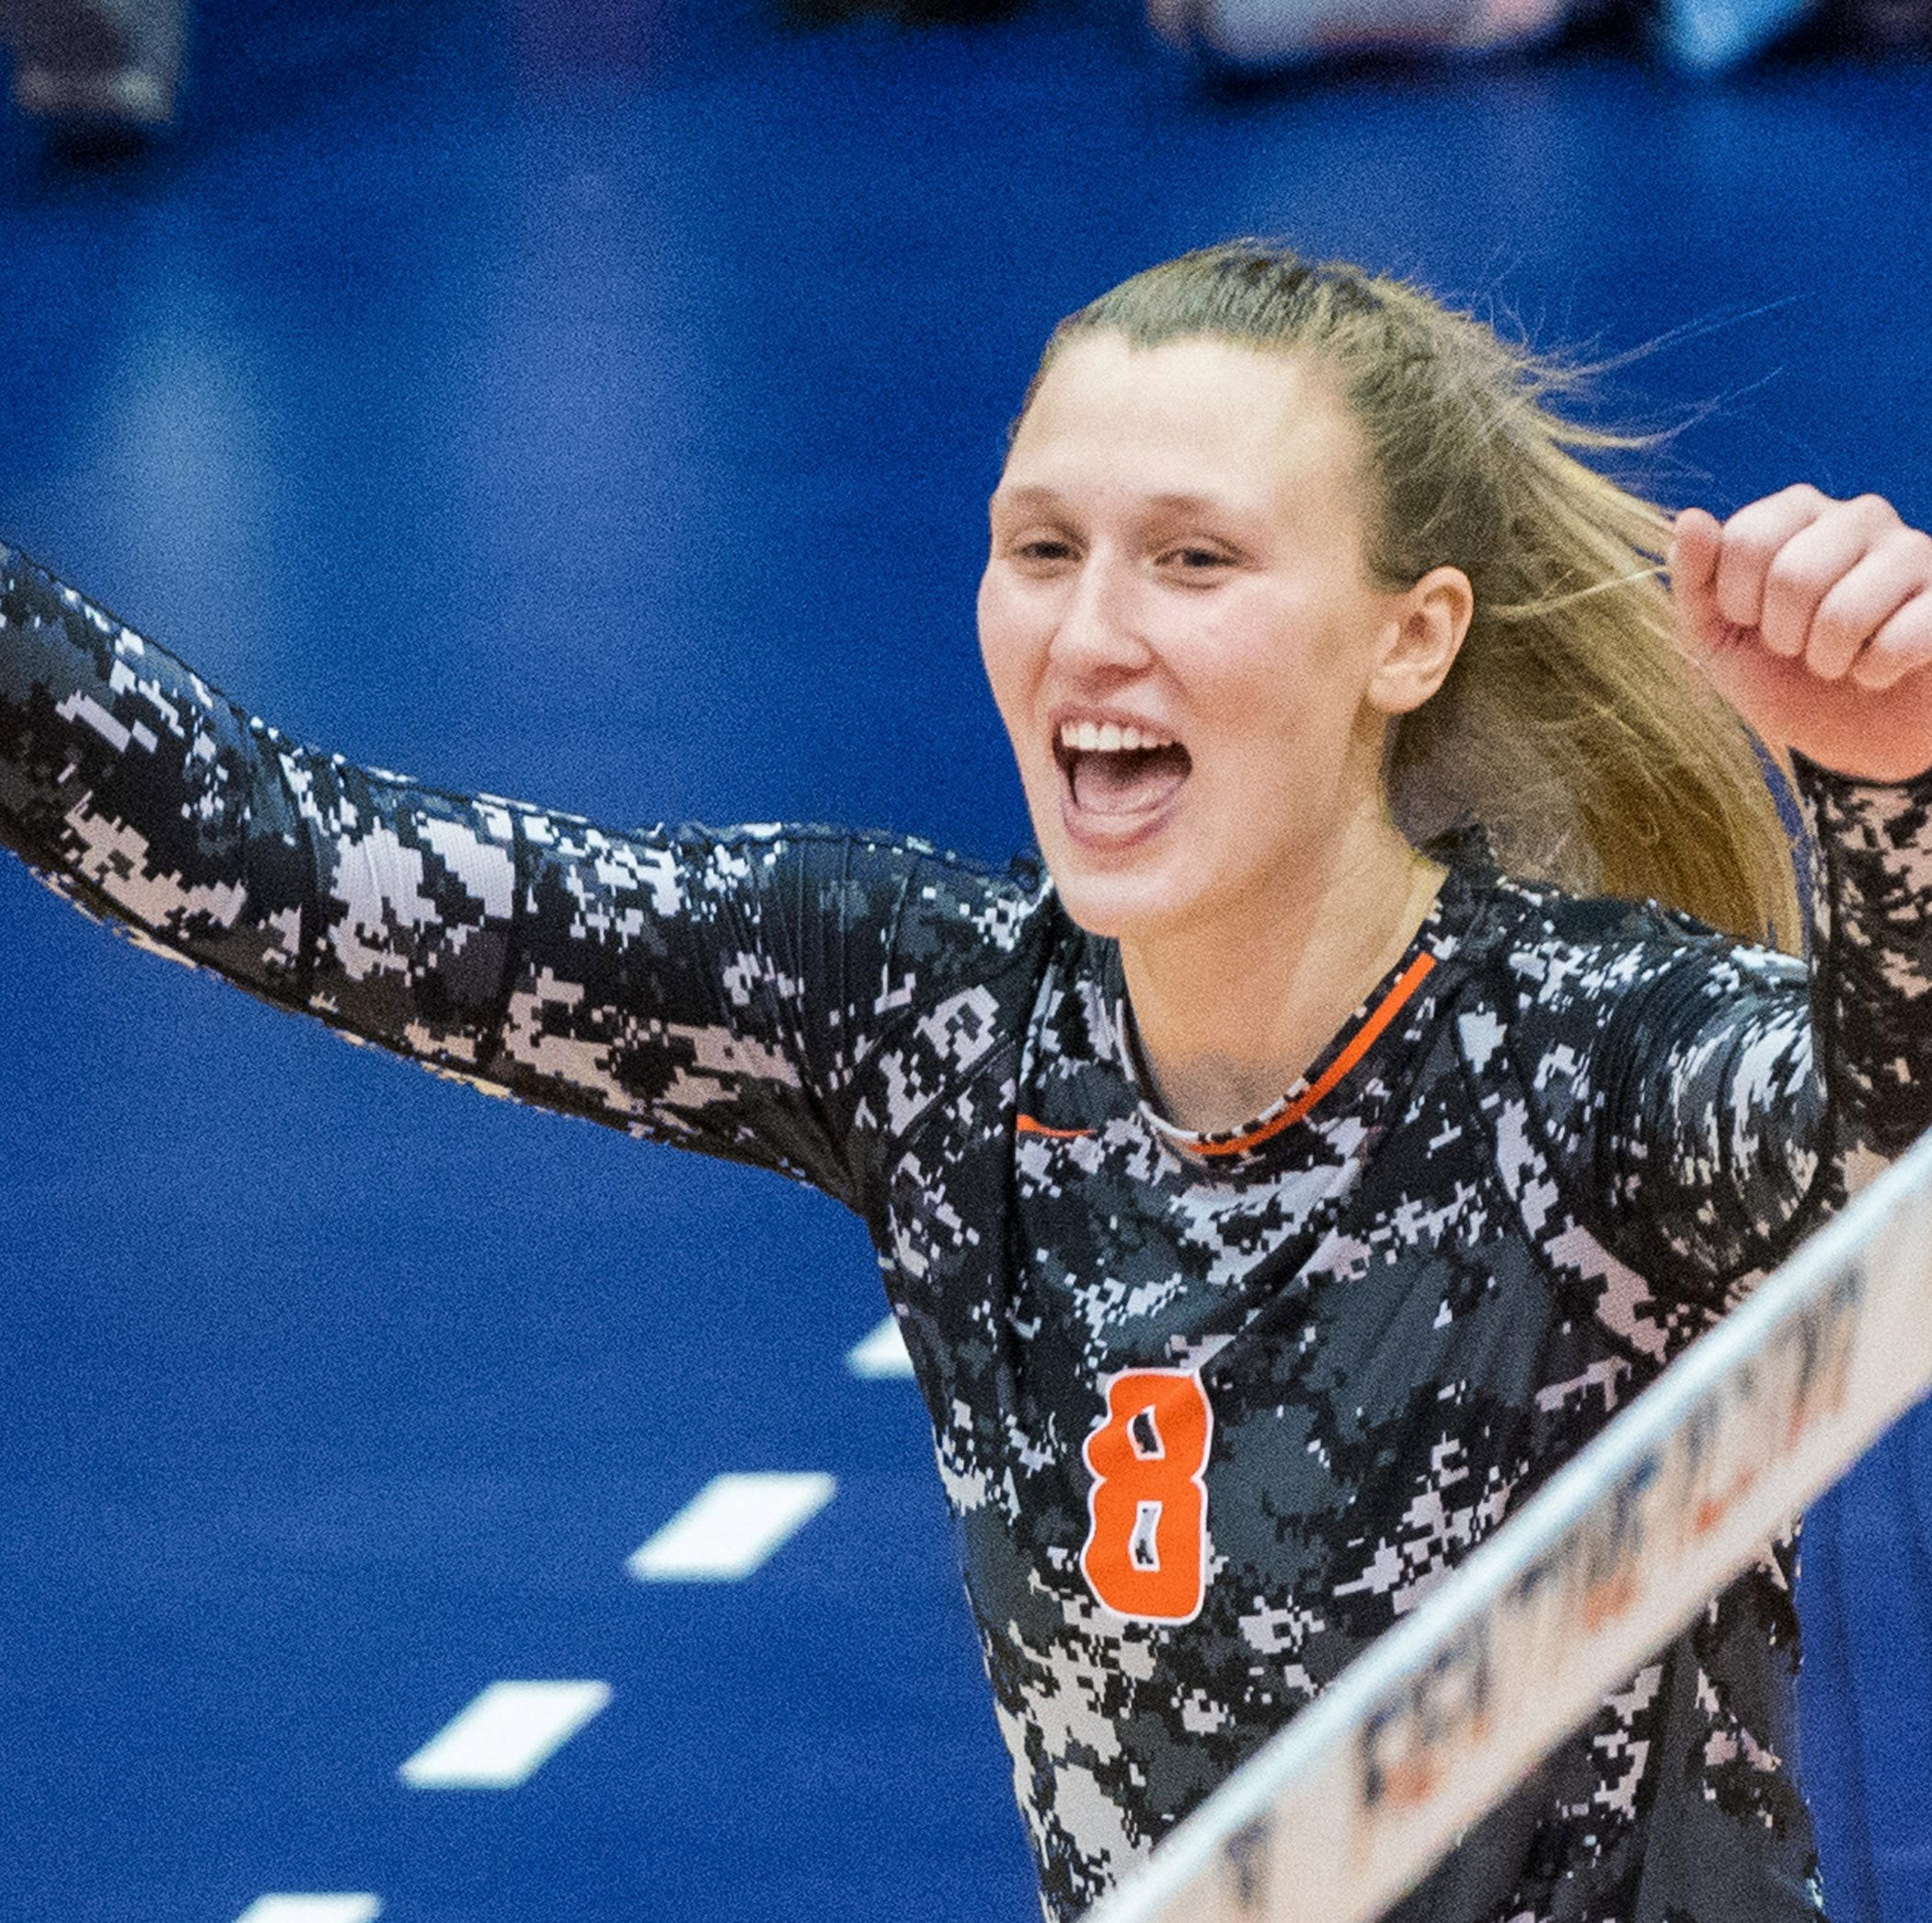 Robin Scholz/The News-Gazette